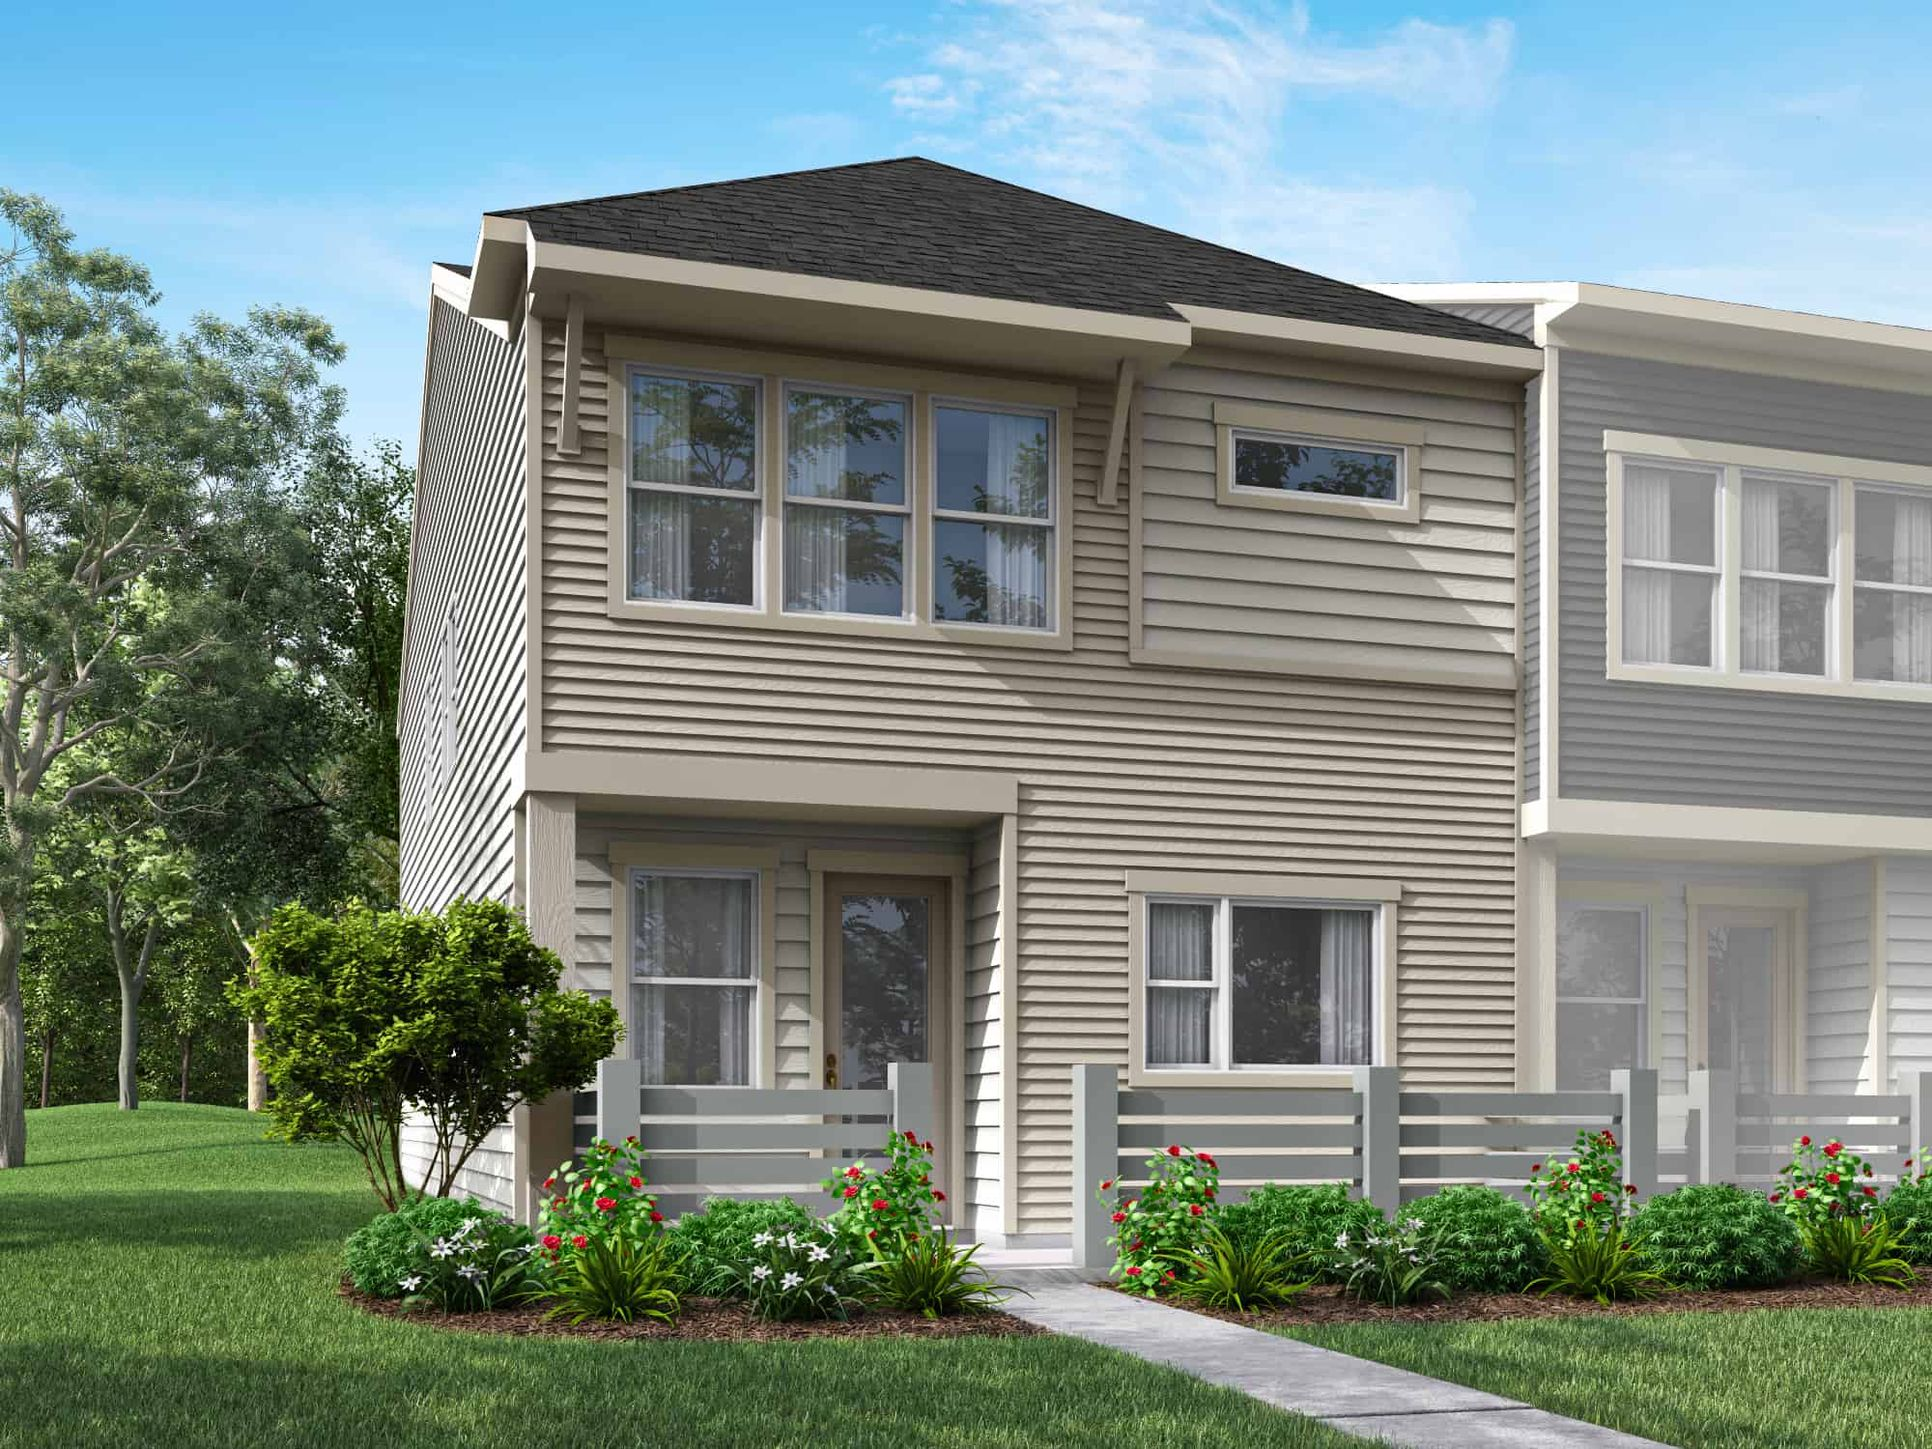 Pennant Square | Plan 2 - Exterior Style A